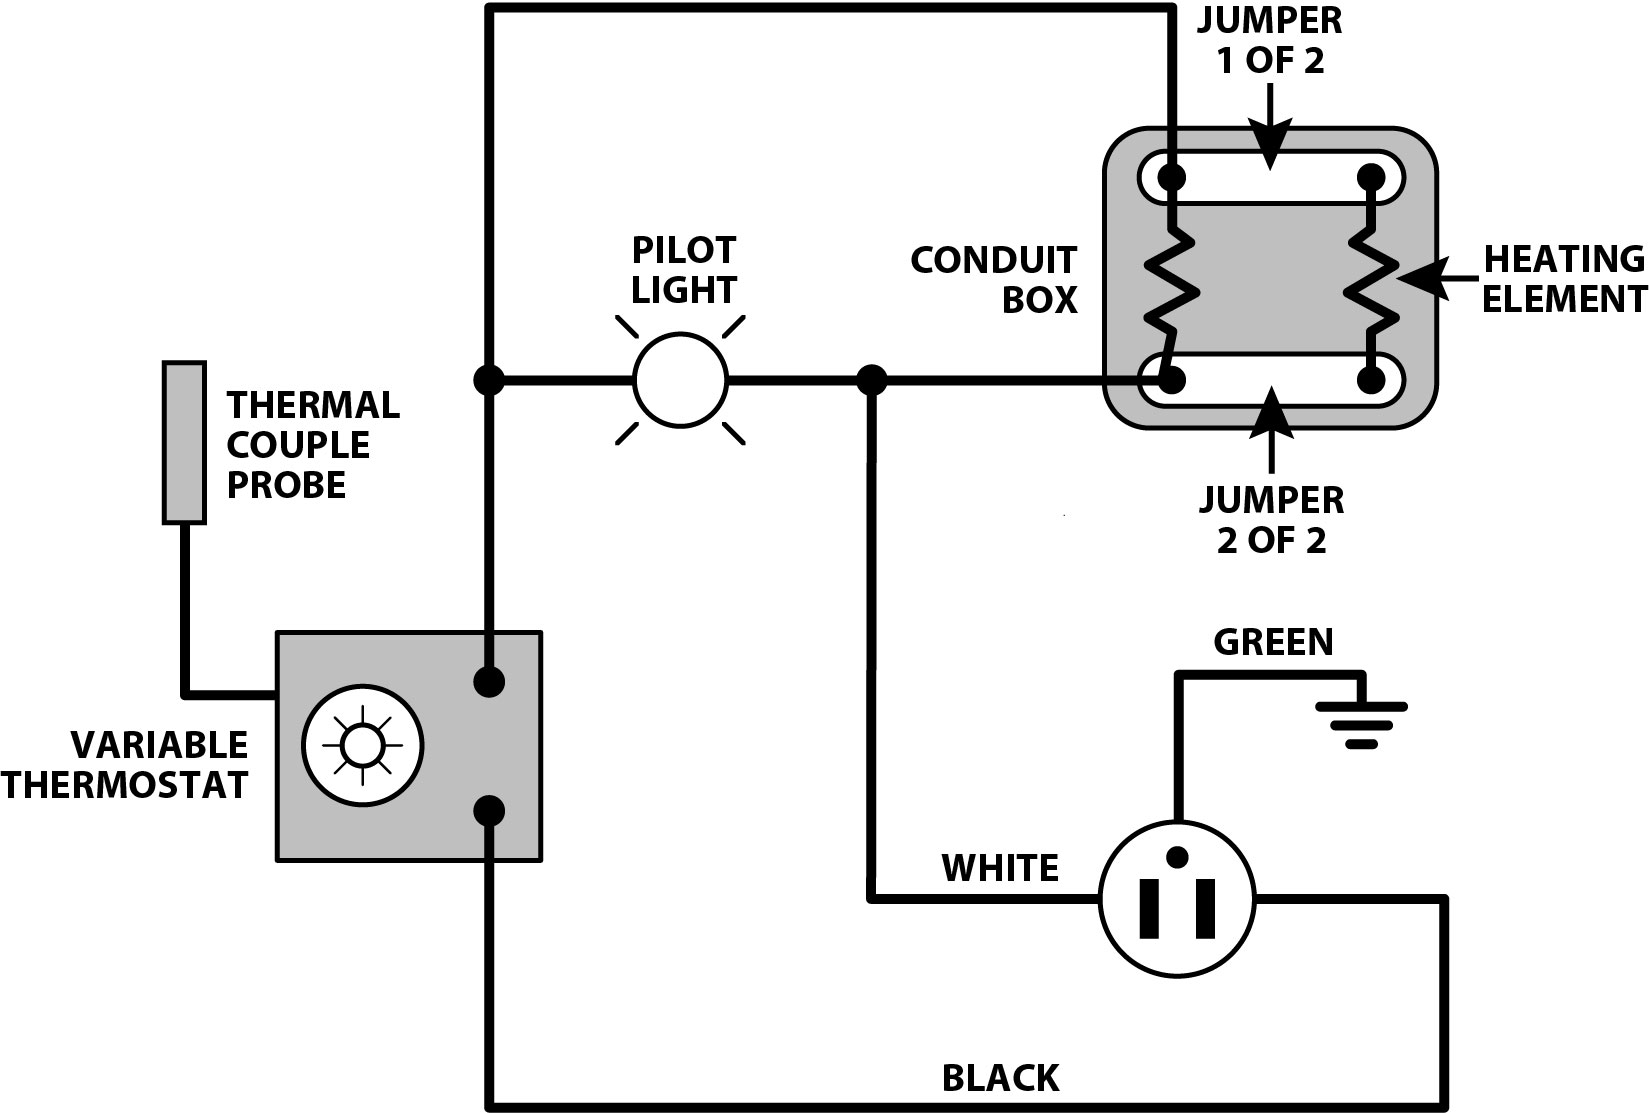 wiring diagram for a 120 volt thermostat